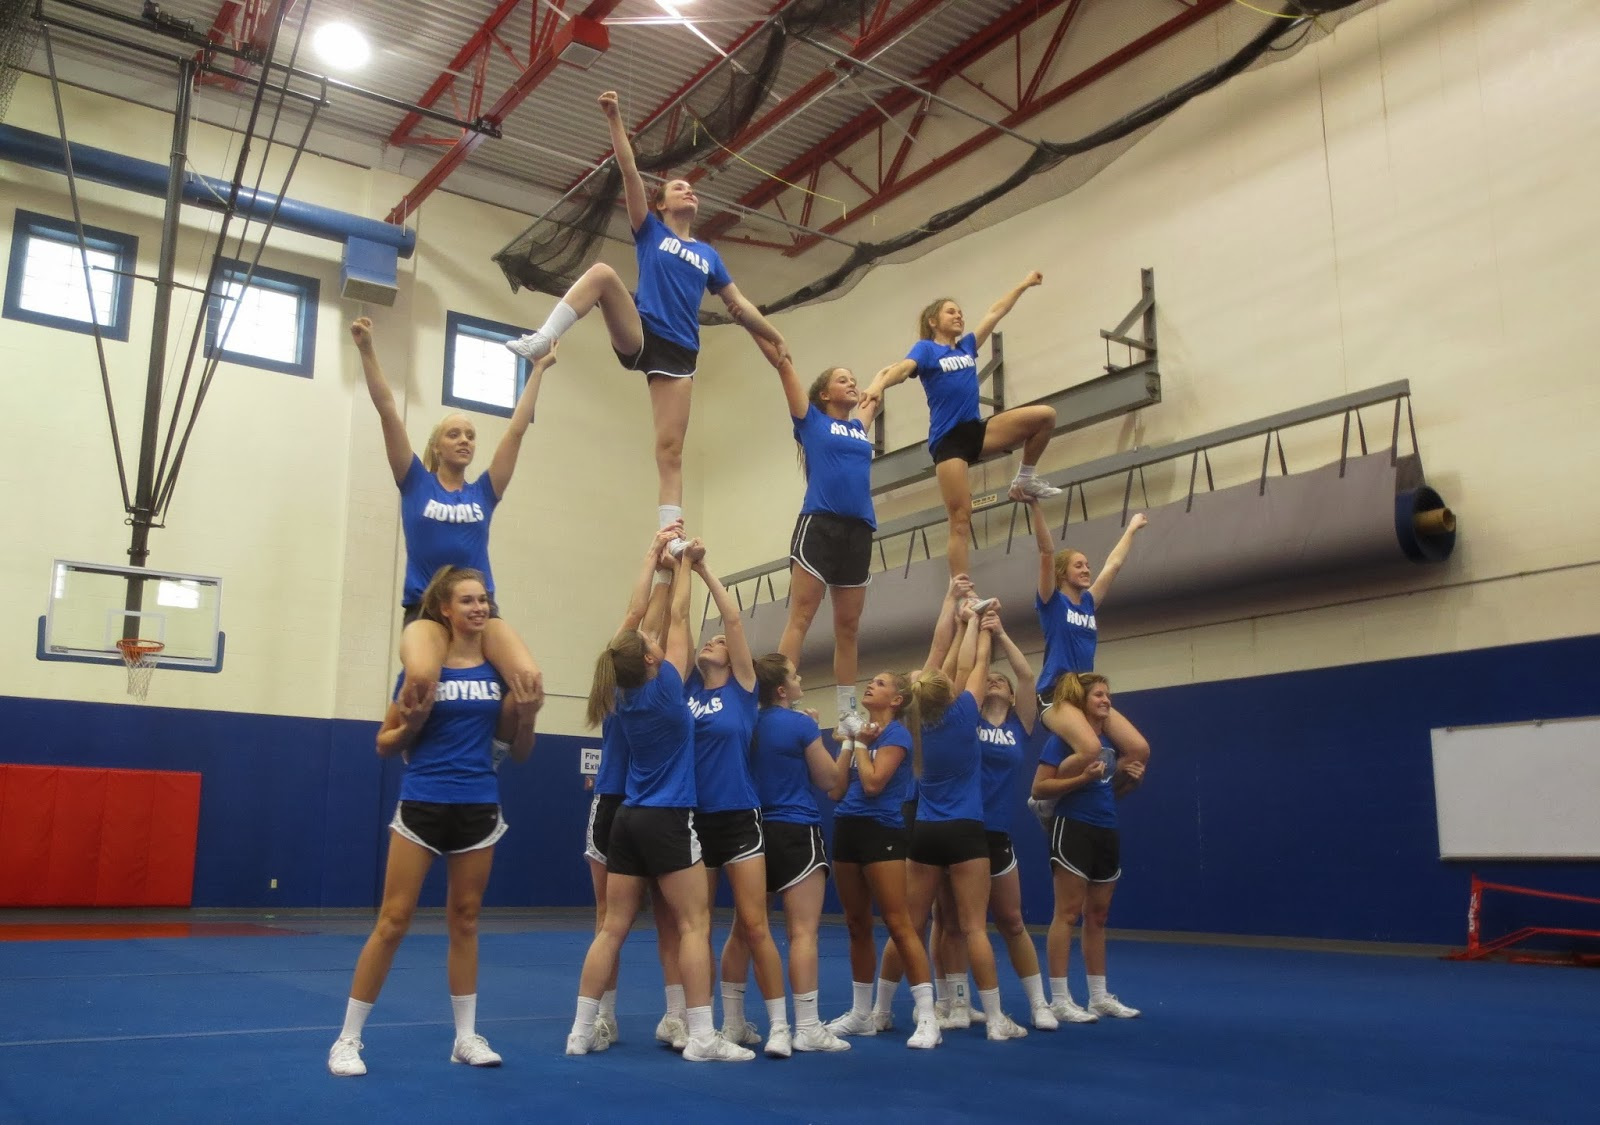 is cheerleading a sport essay Included: cheerleading essay sports essay content preview text: the most general association people have about cheerleading is entertainment when someone asks a cheerleader what this activity is, they will get a straightforward answer: it's a sport.